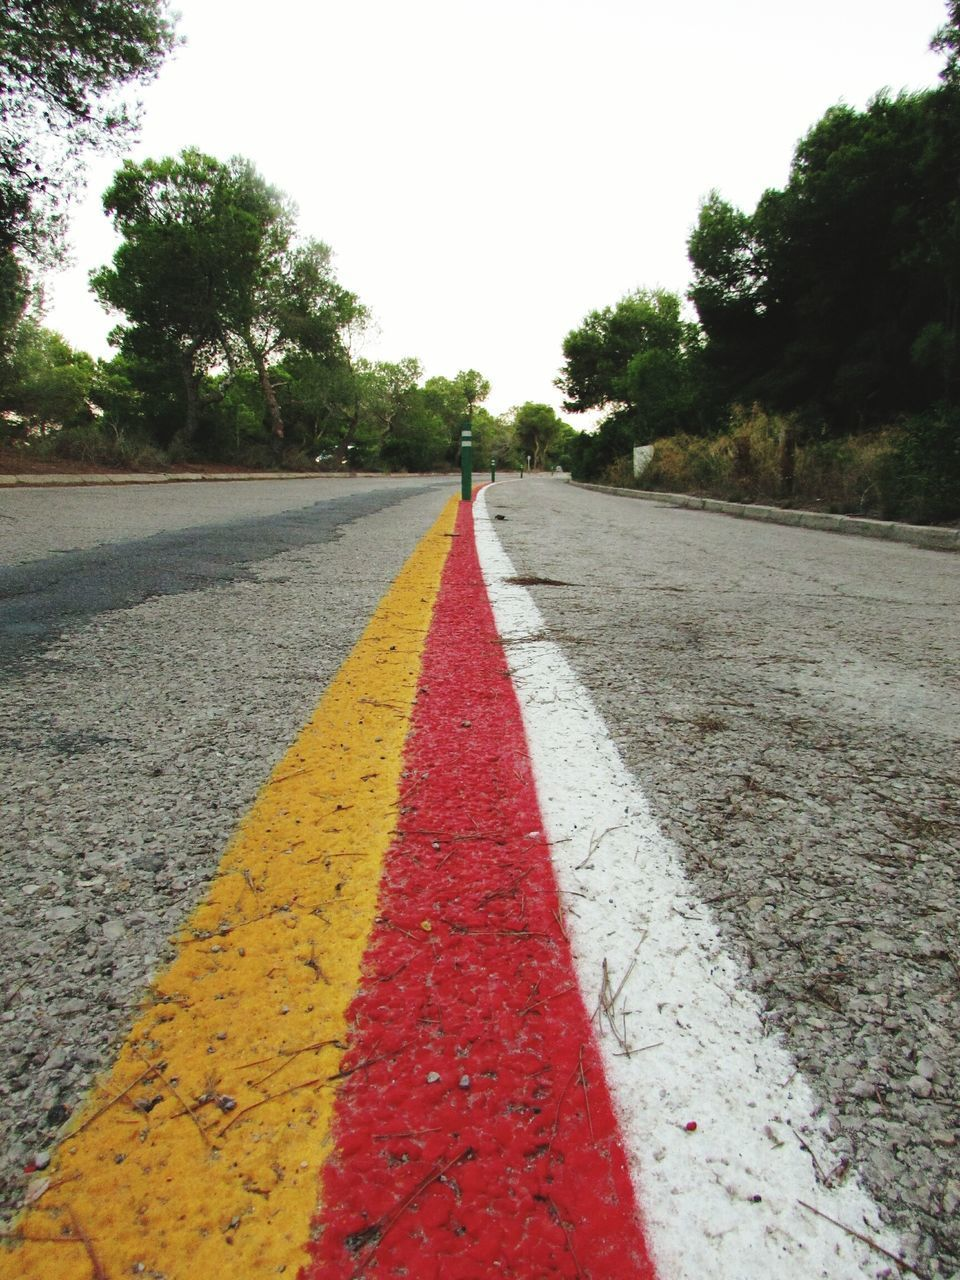 the way forward, road, tree, diminishing perspective, road marking, transportation, red, yellow, street, asphalt, day, outdoors, no people, straight, sky, nature